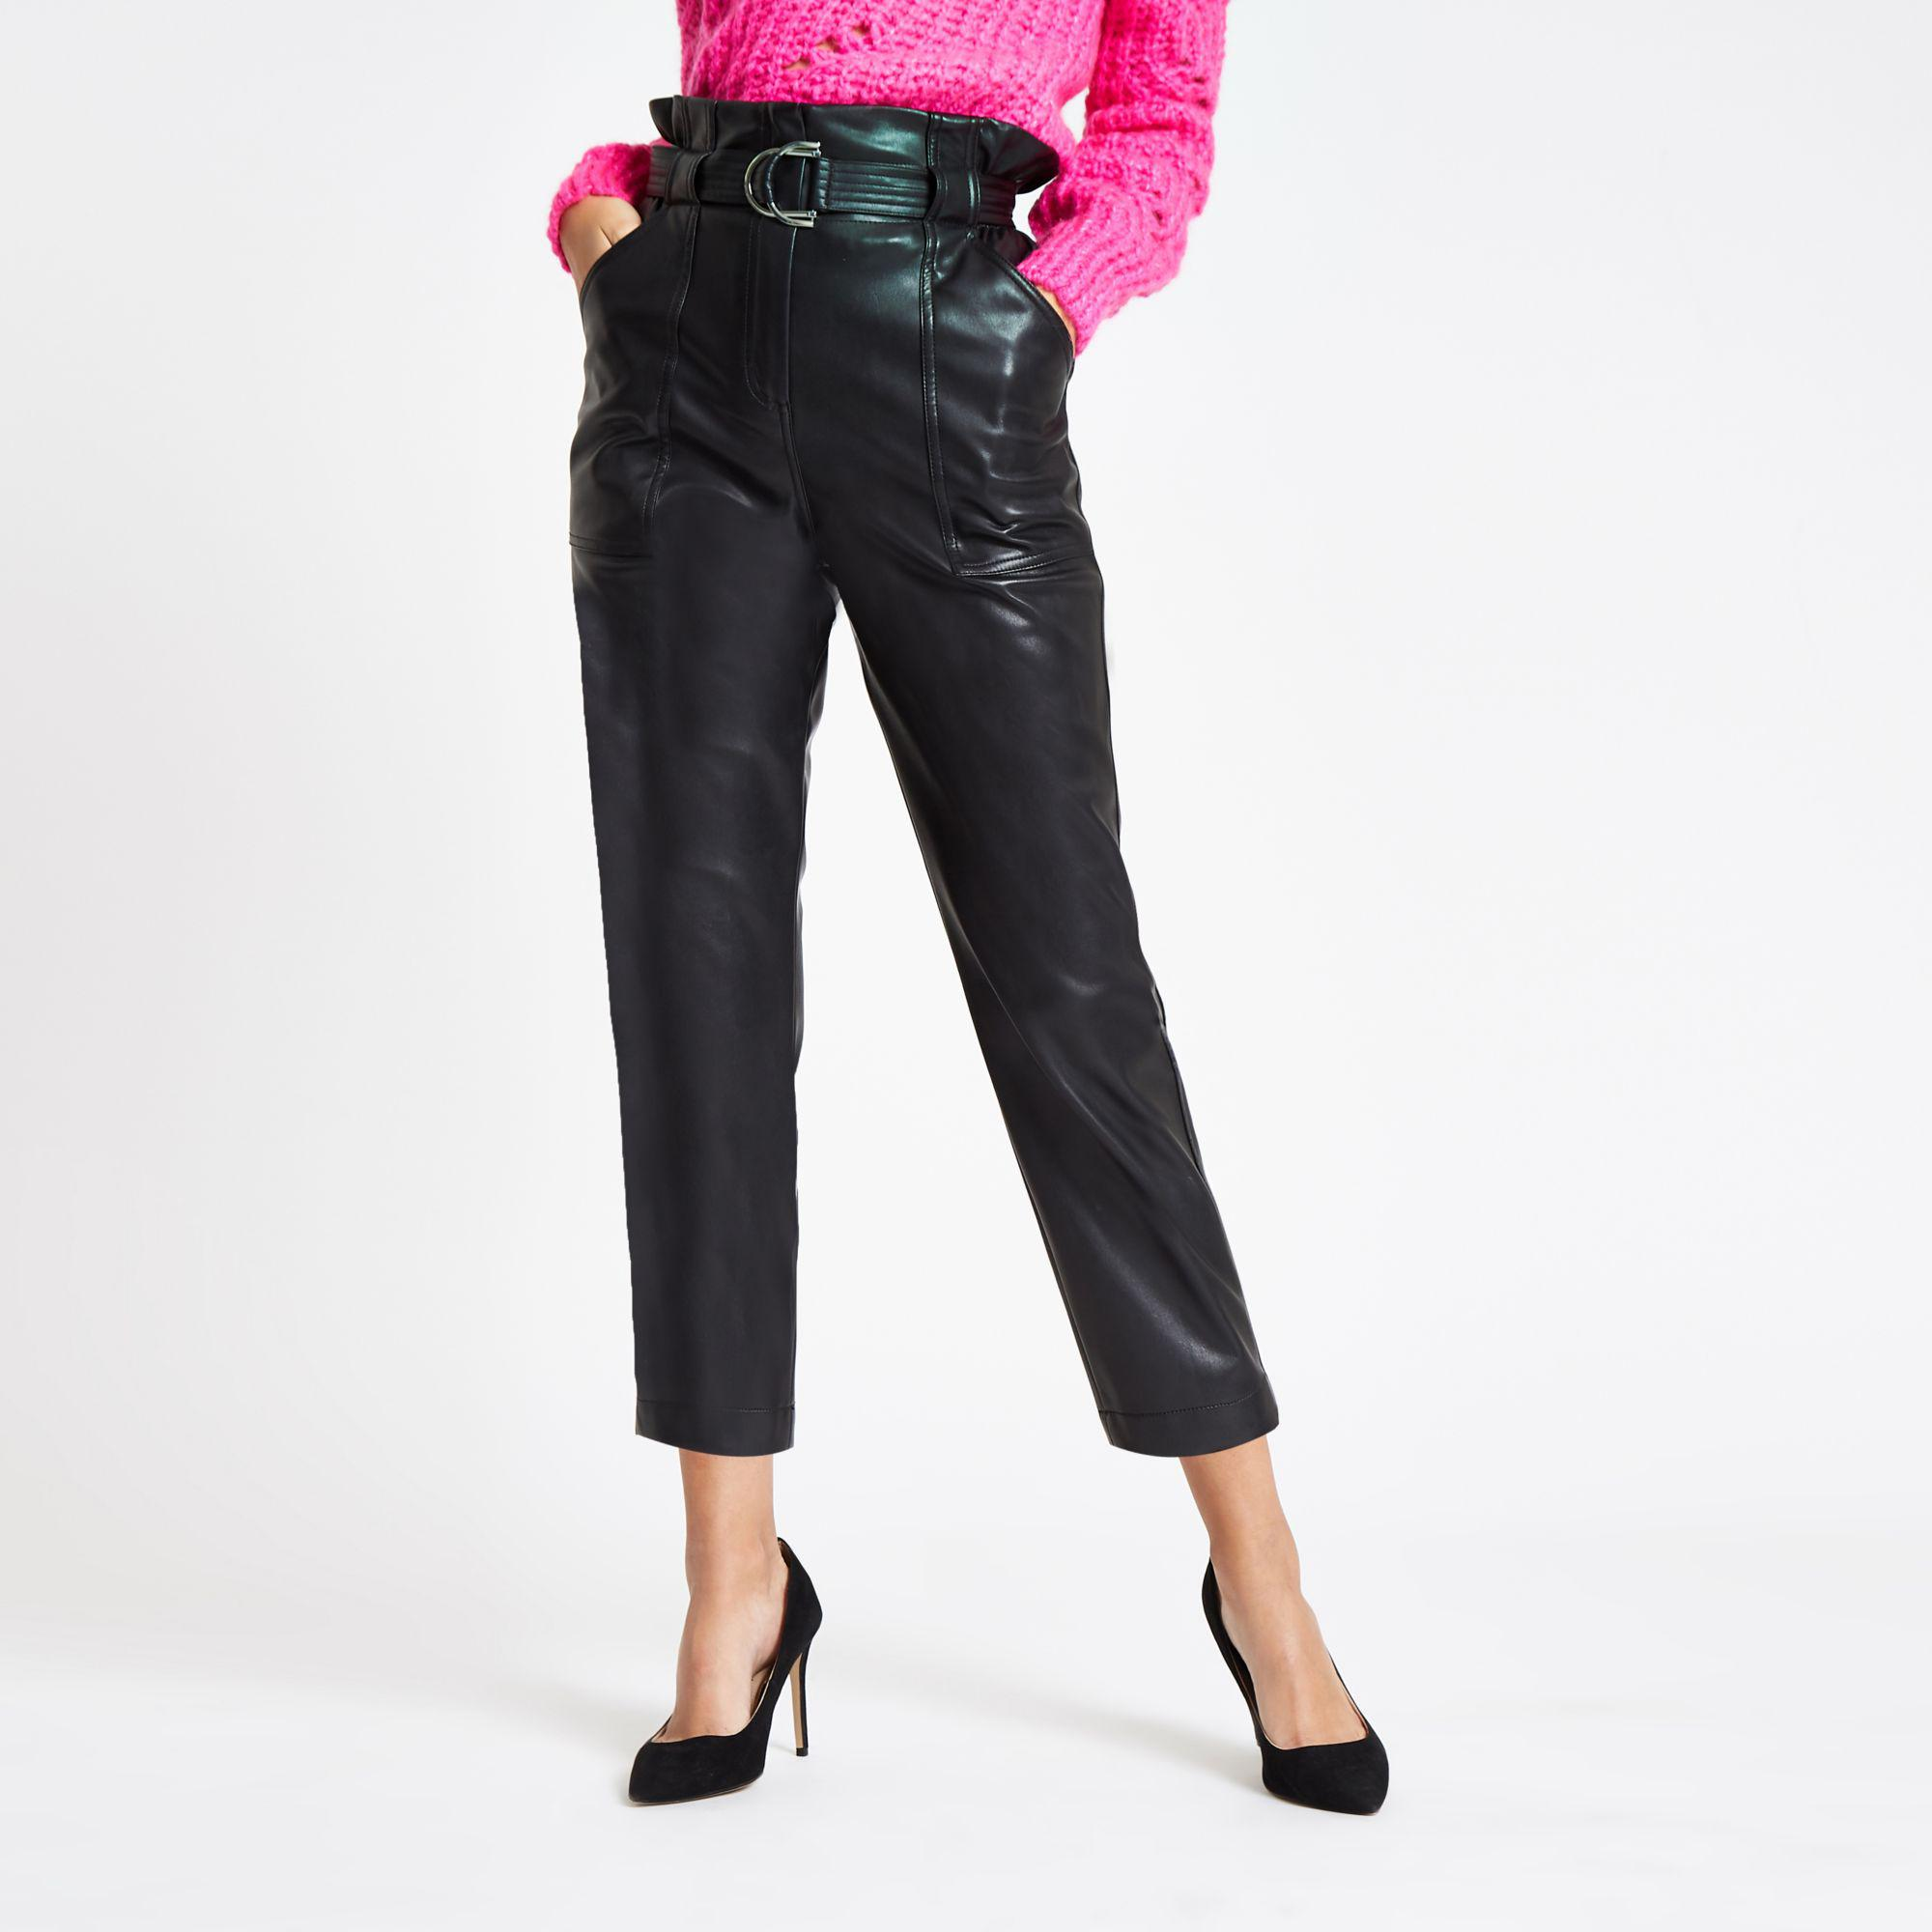 cfb13a0e54003 Lyst - River Island Black Faux Leather Paperbag Waist Trousers in Black